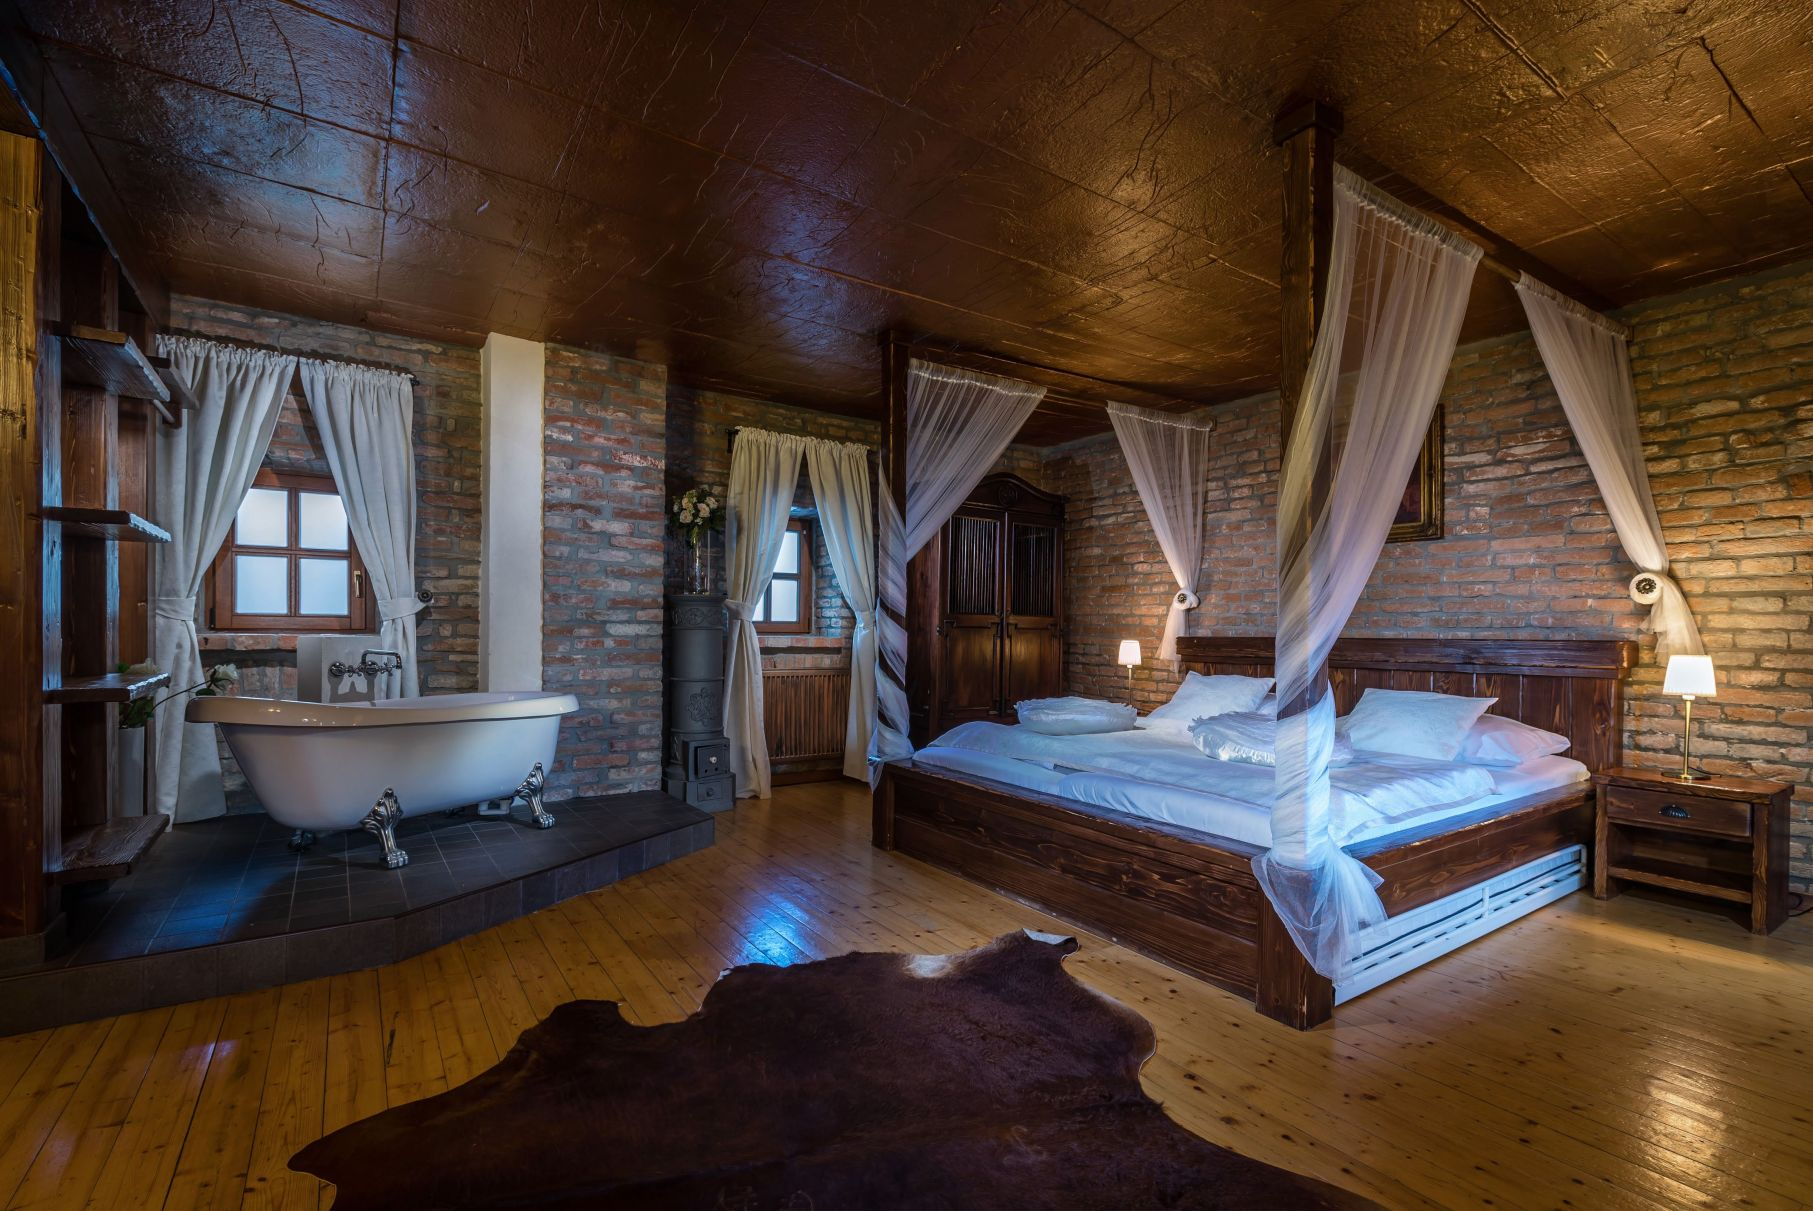 Accommodation in Chateau Krakovany